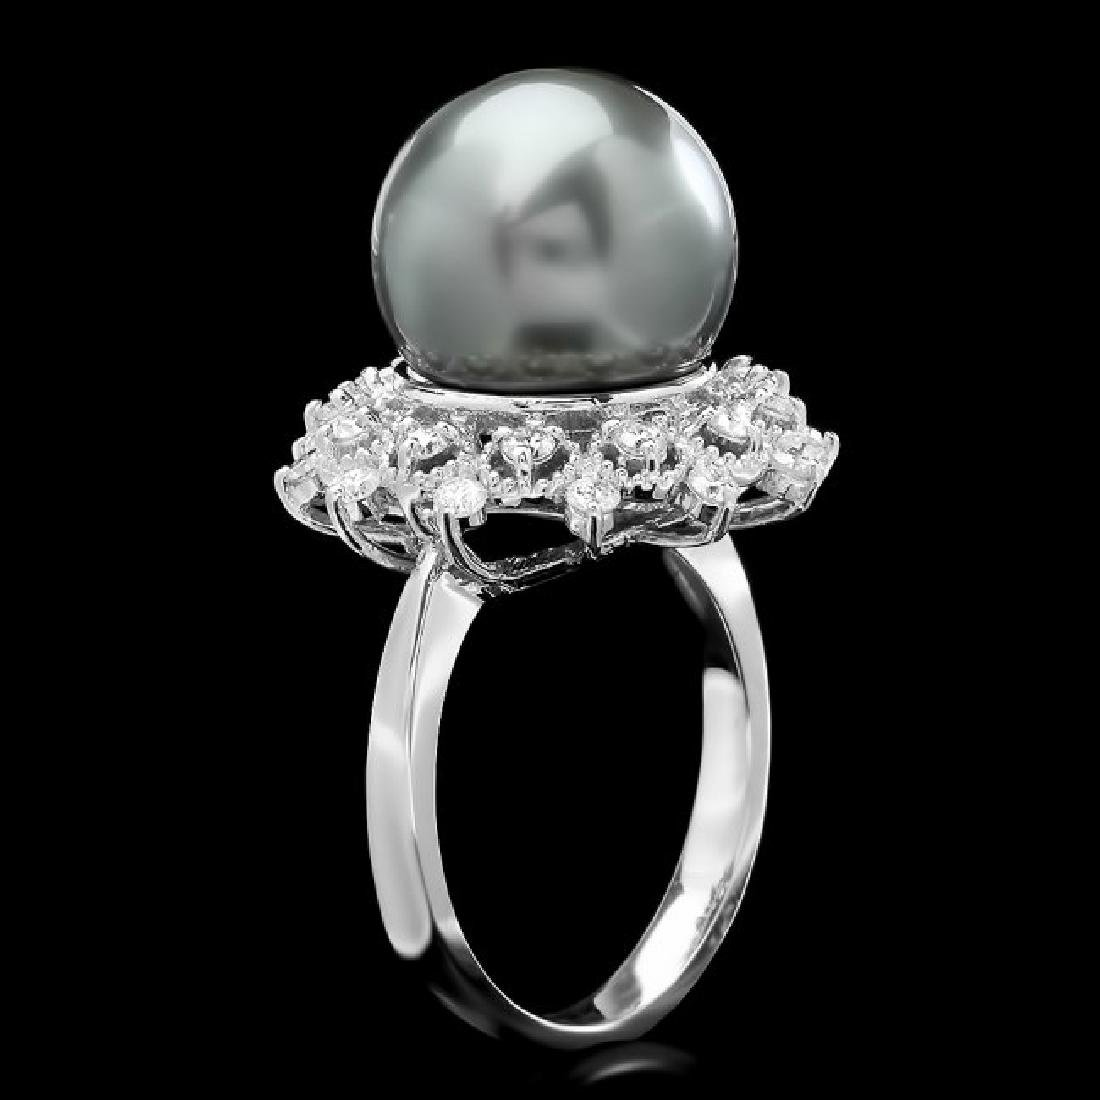 14k White Gold 12.5mm Pearl 0.60ct Diamond Ring - 2